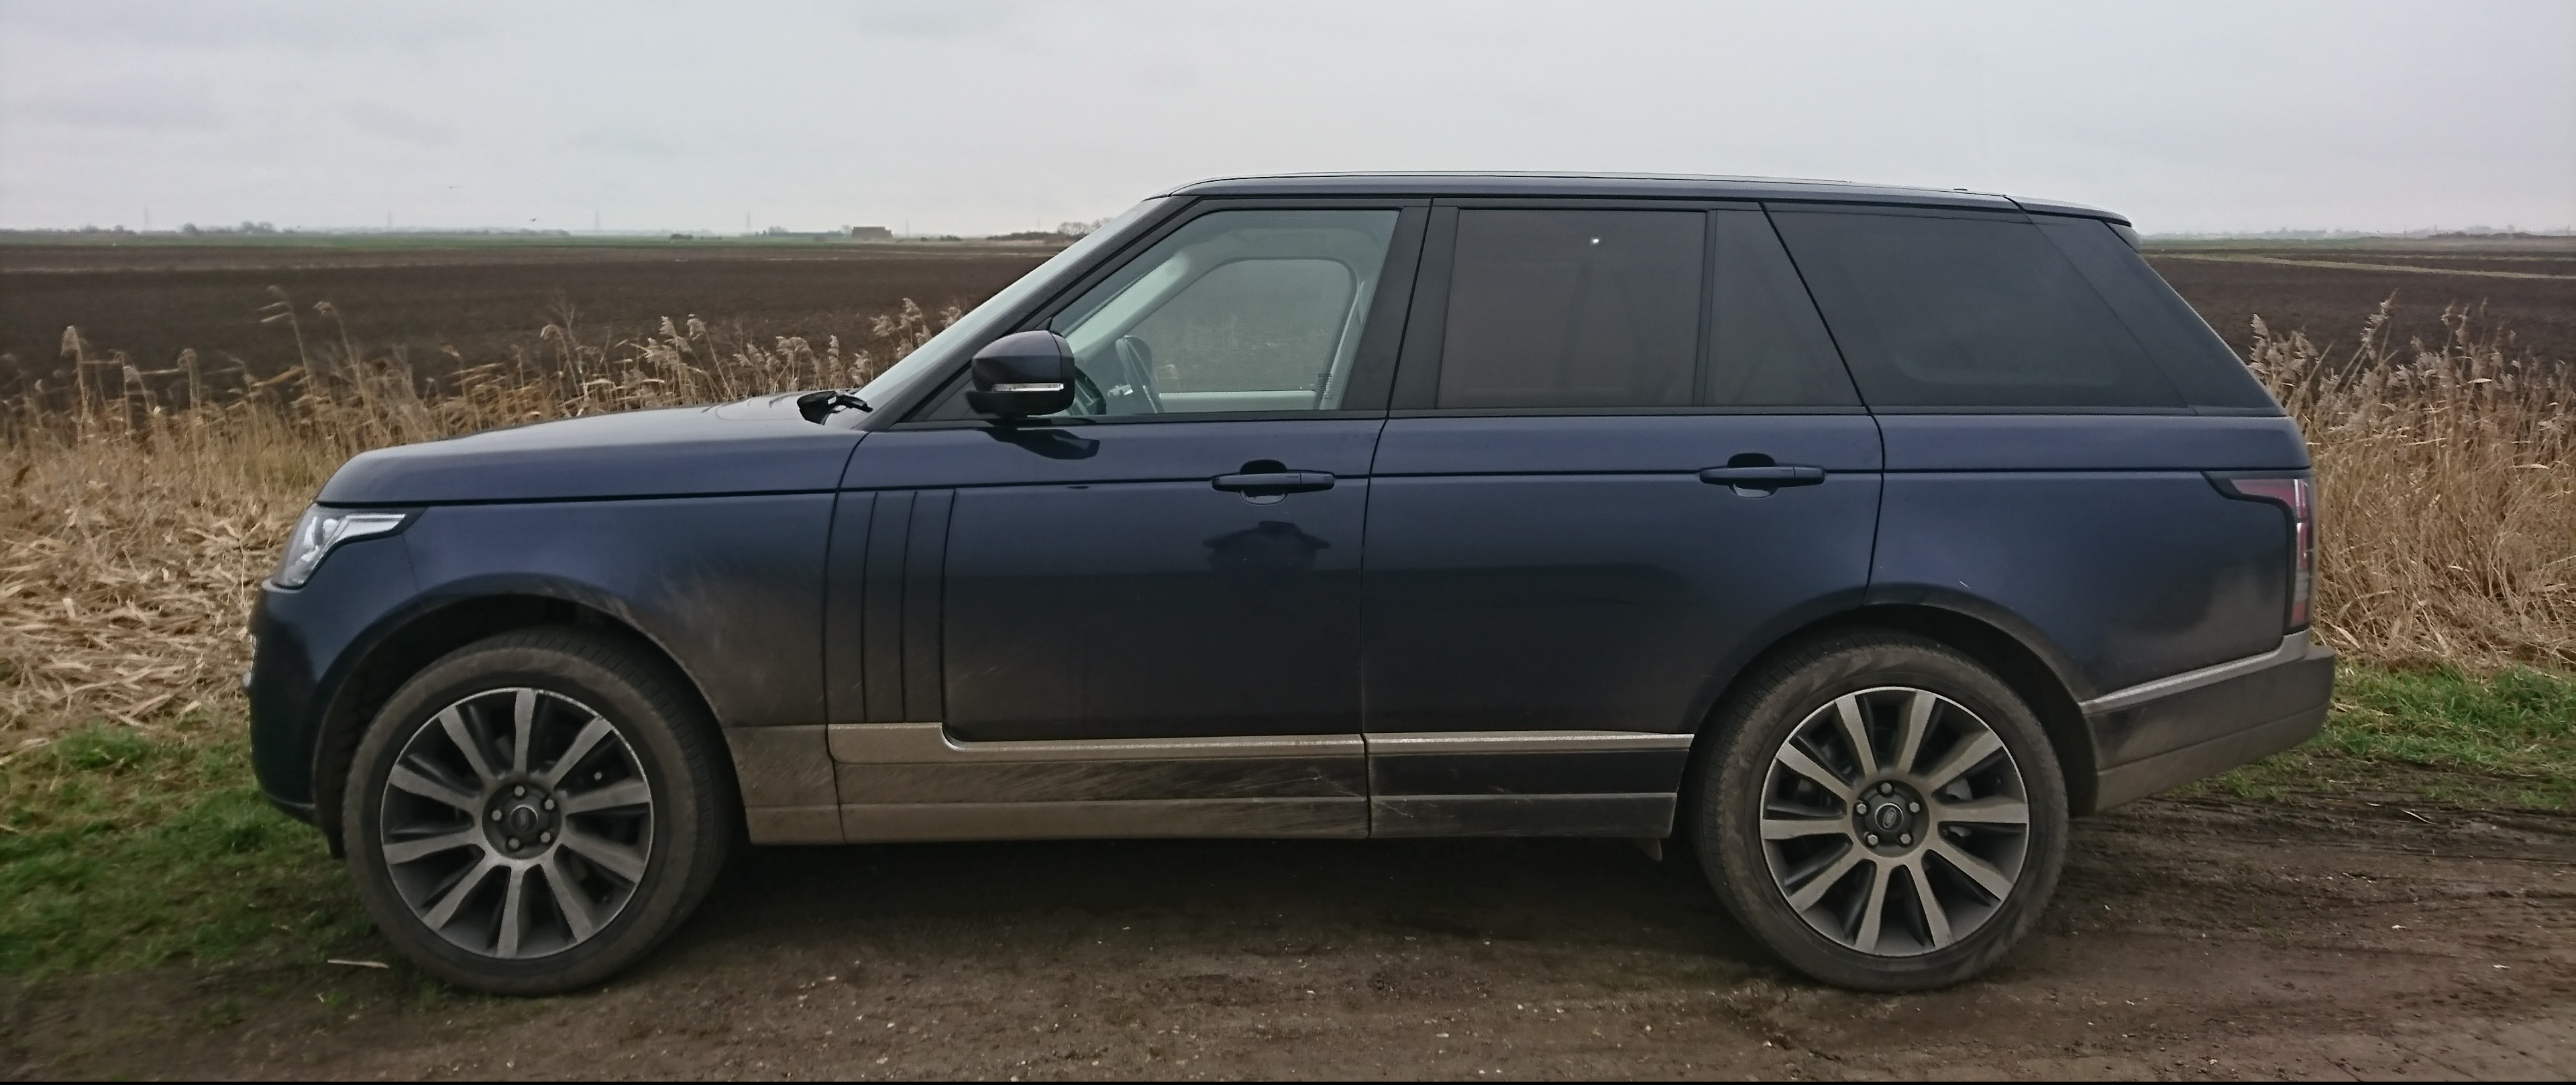 L405 Range Rover Vogue